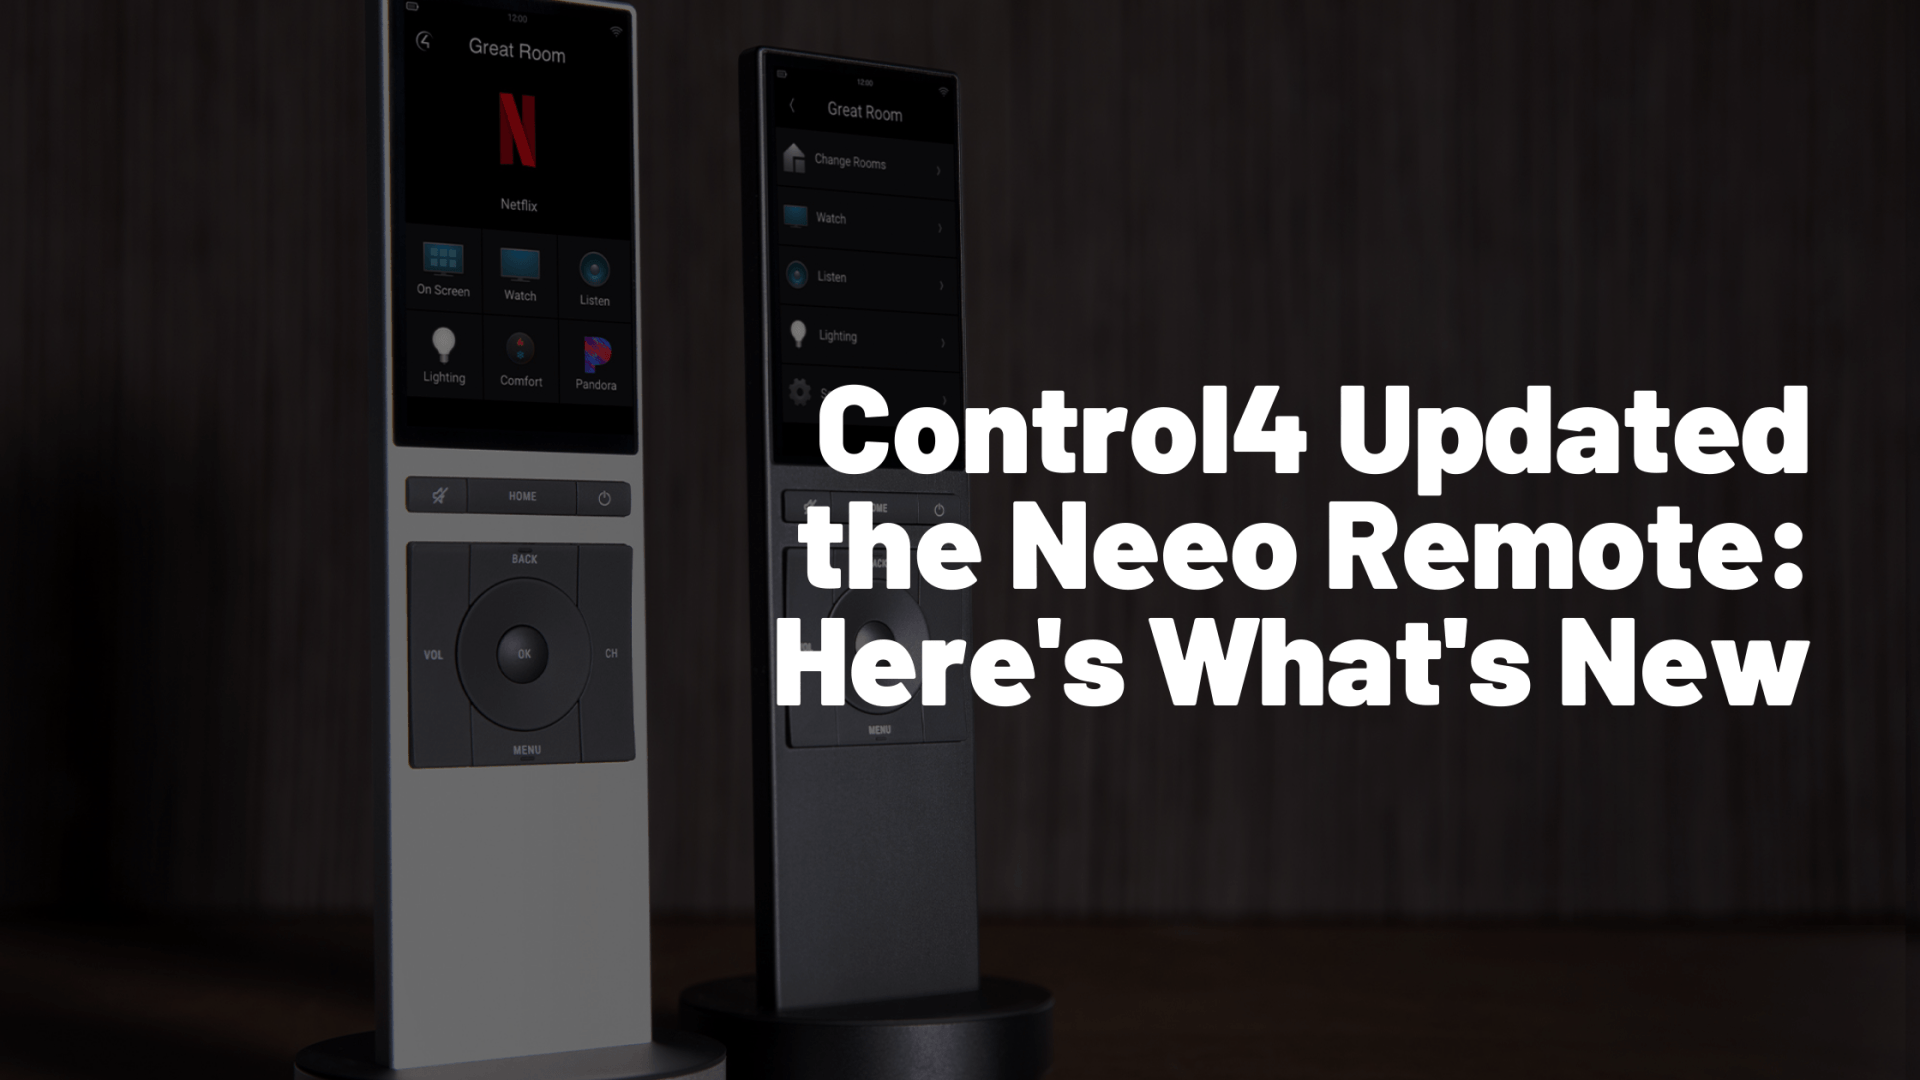 Control4 Neeo Remote Smart Home Update